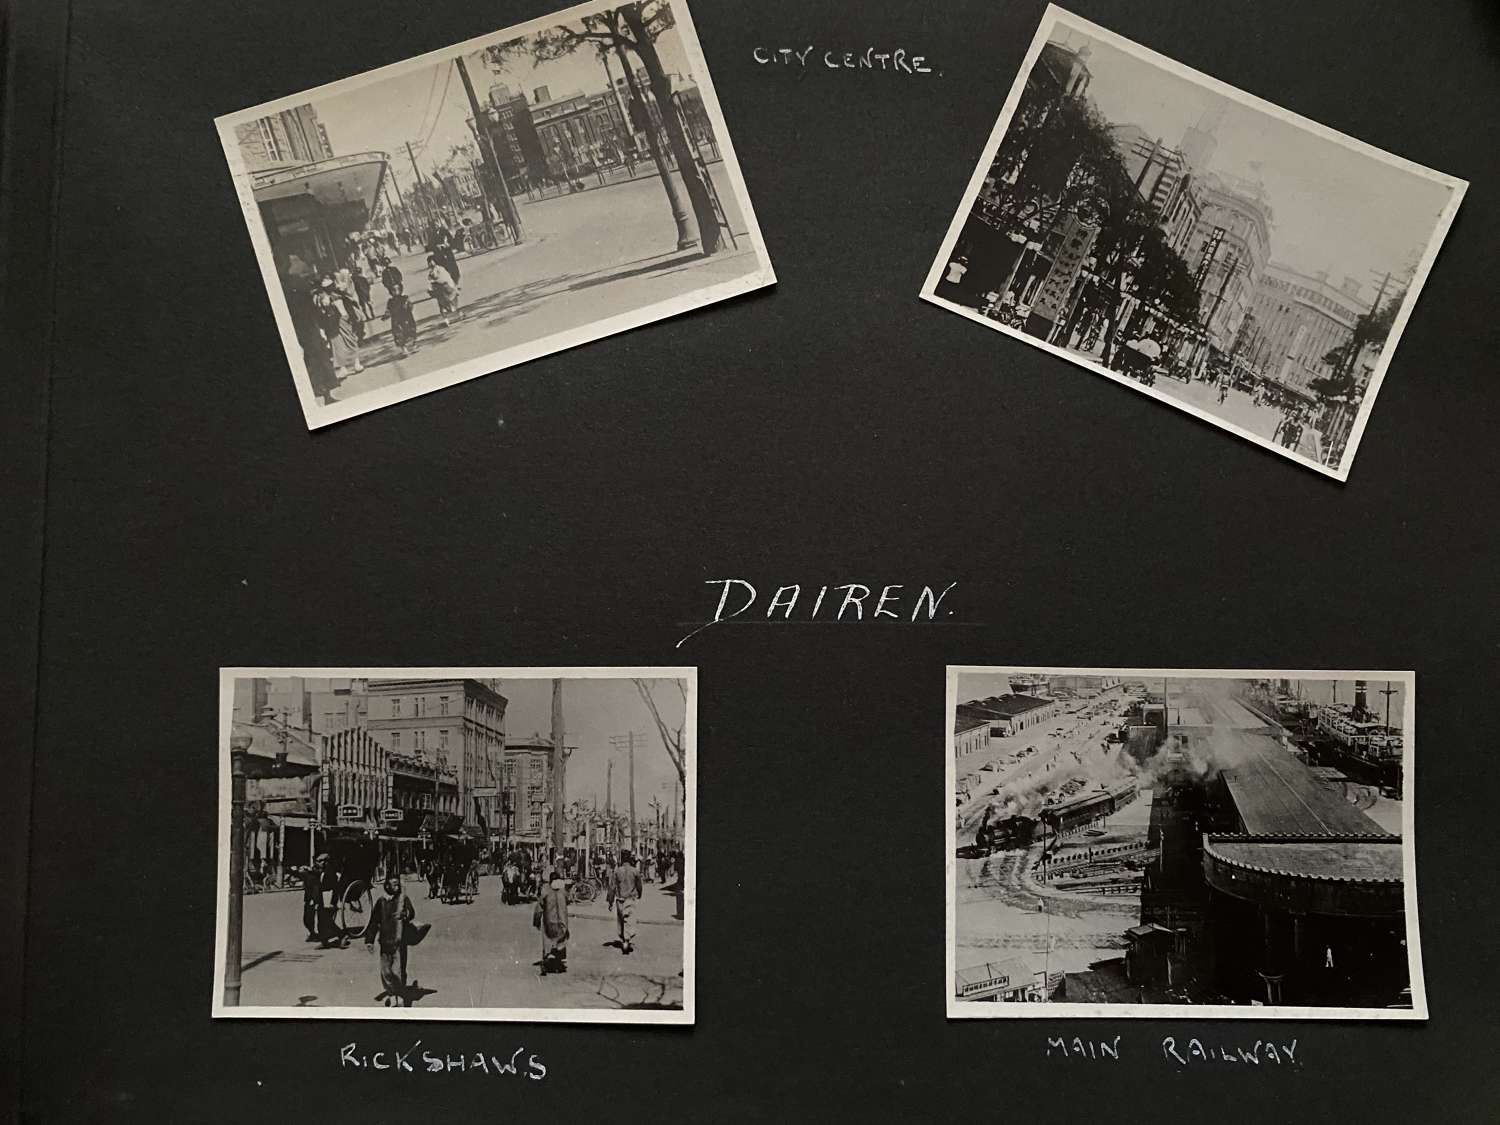 4 Photos View of Dalian Street Scenes & Railway. China C1935